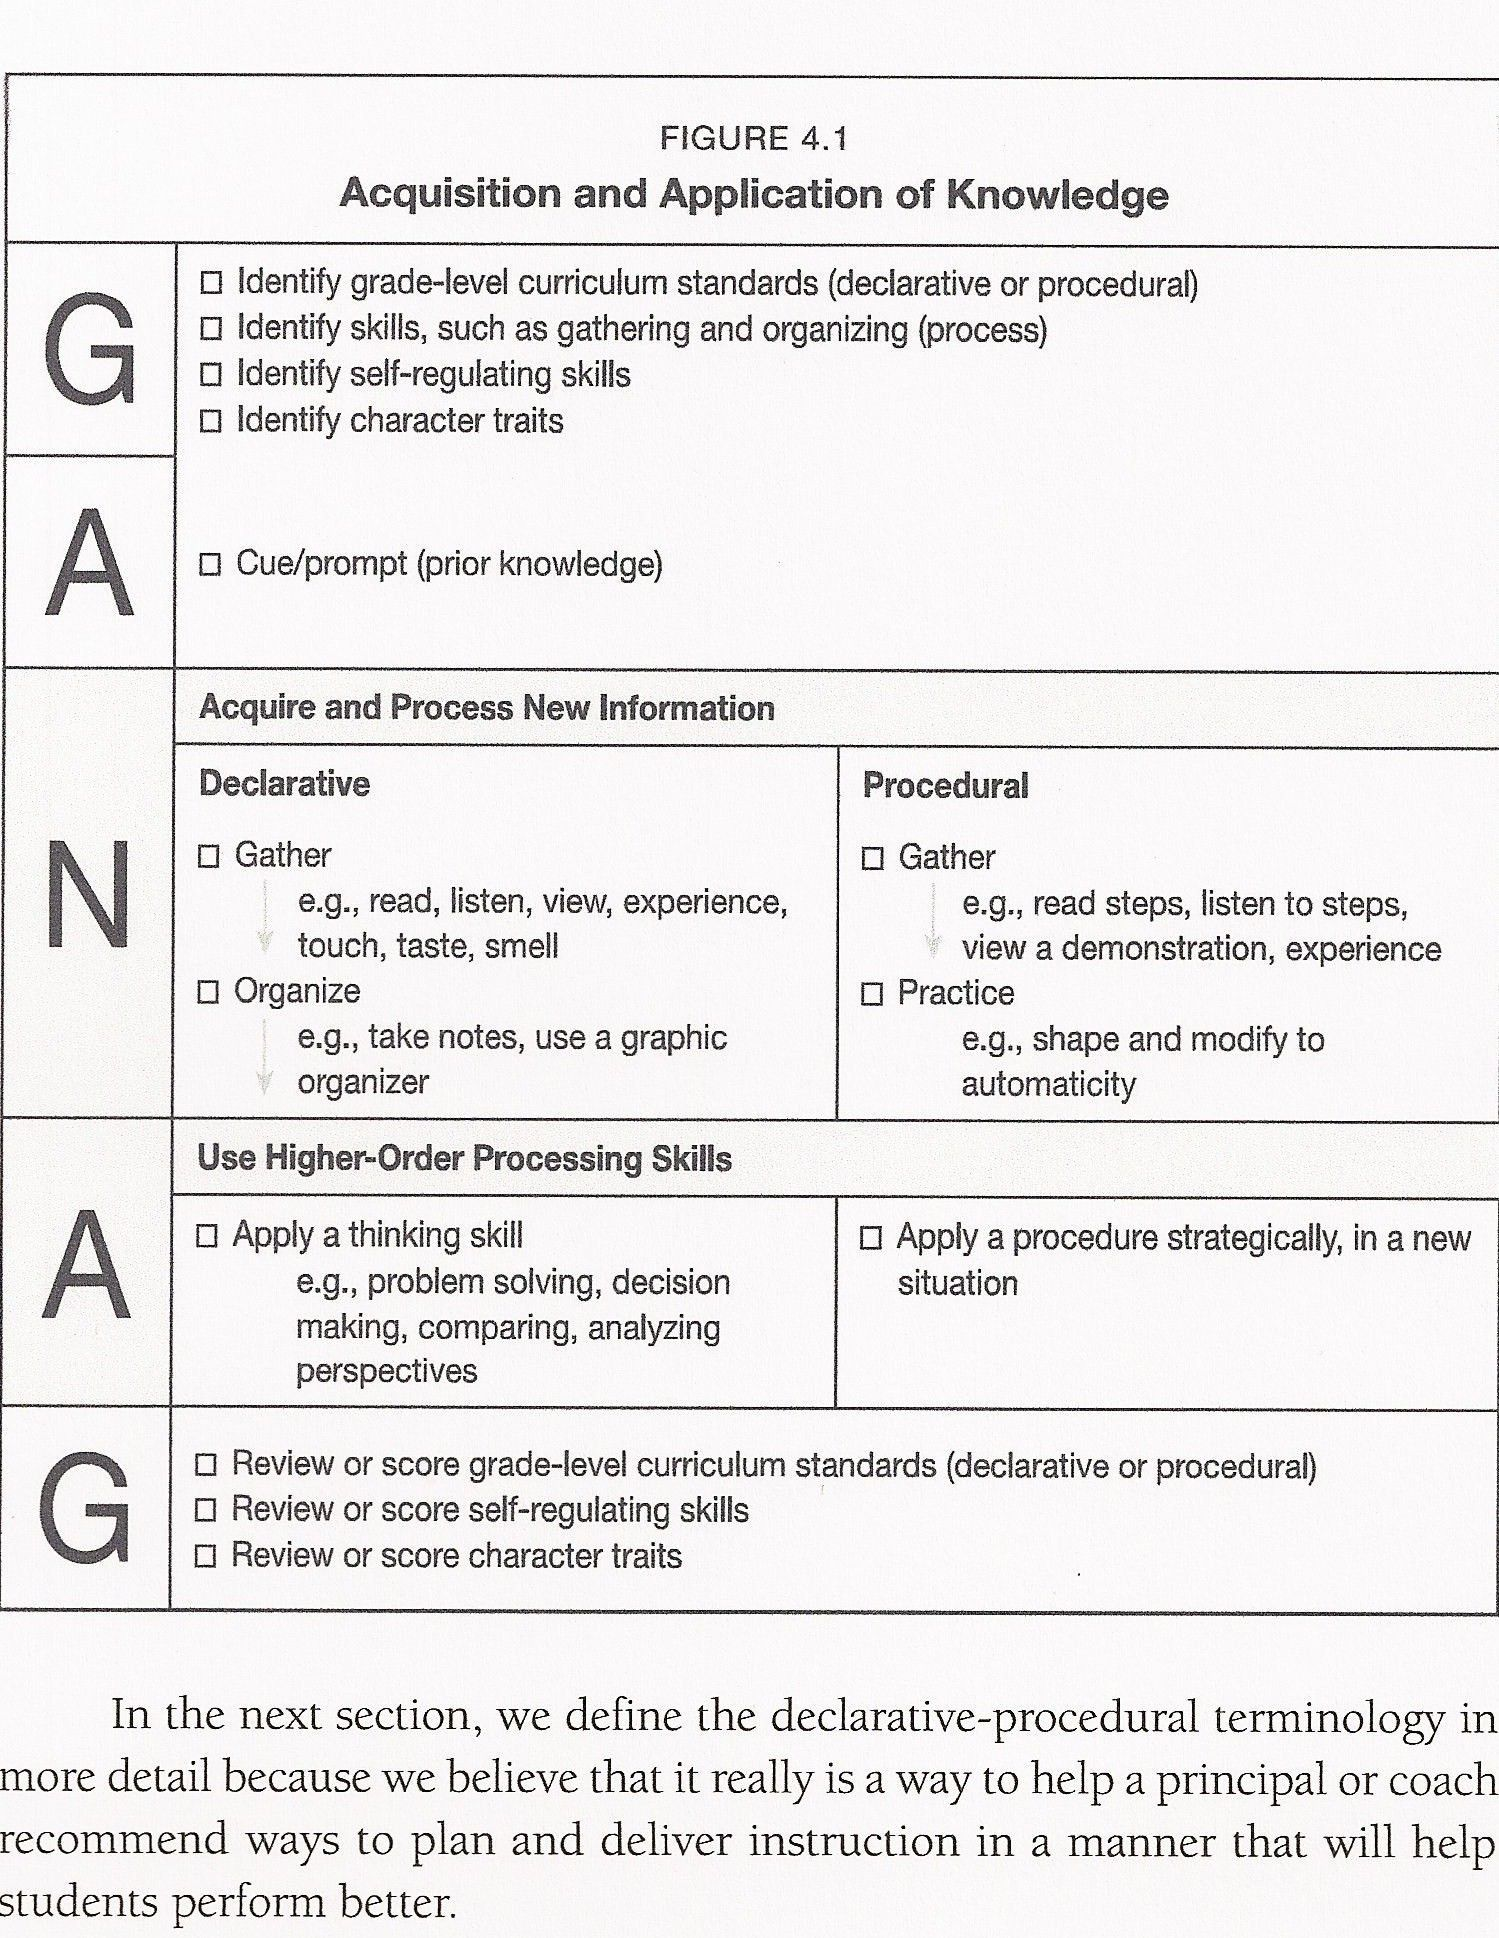 Differentiated Instruction Lesson Plan Template Inspirational Ganag P 82 Jpg 1 499 Lesson Plan Templates Kindergarten Lesson Plans Differentiated Lesson Plans